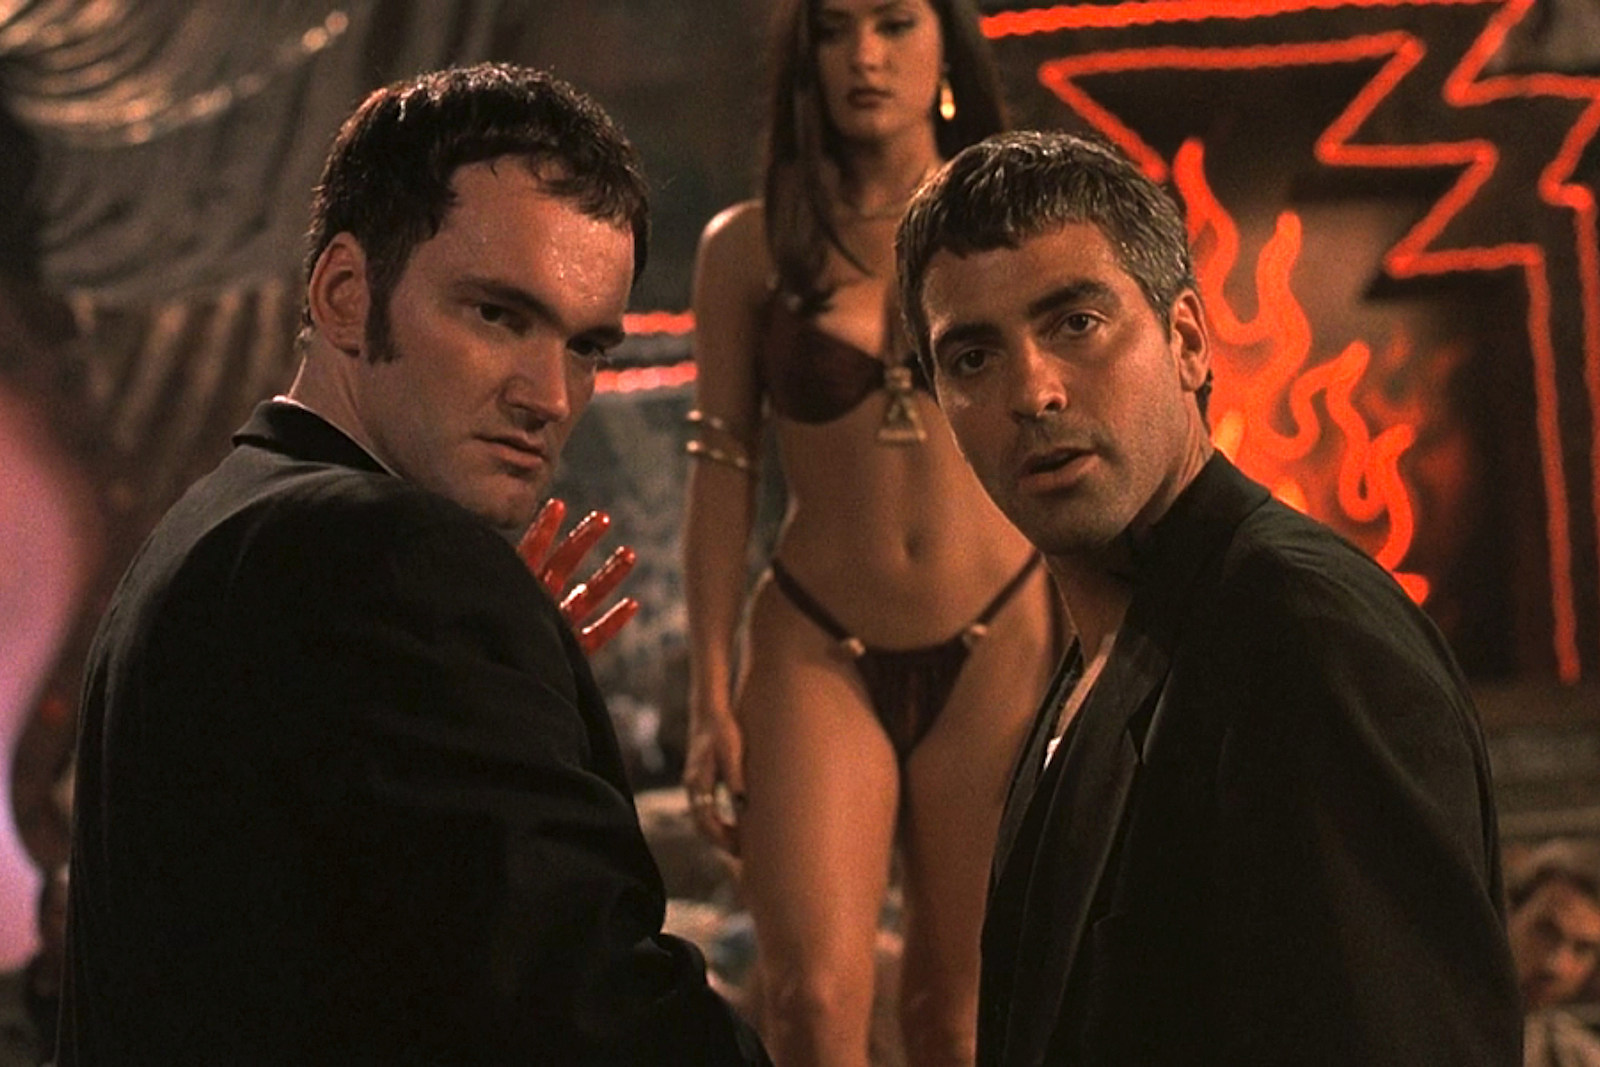 How 'From Dusk 'Till Dawn' Went From 'Unsellable' to Cult Classic